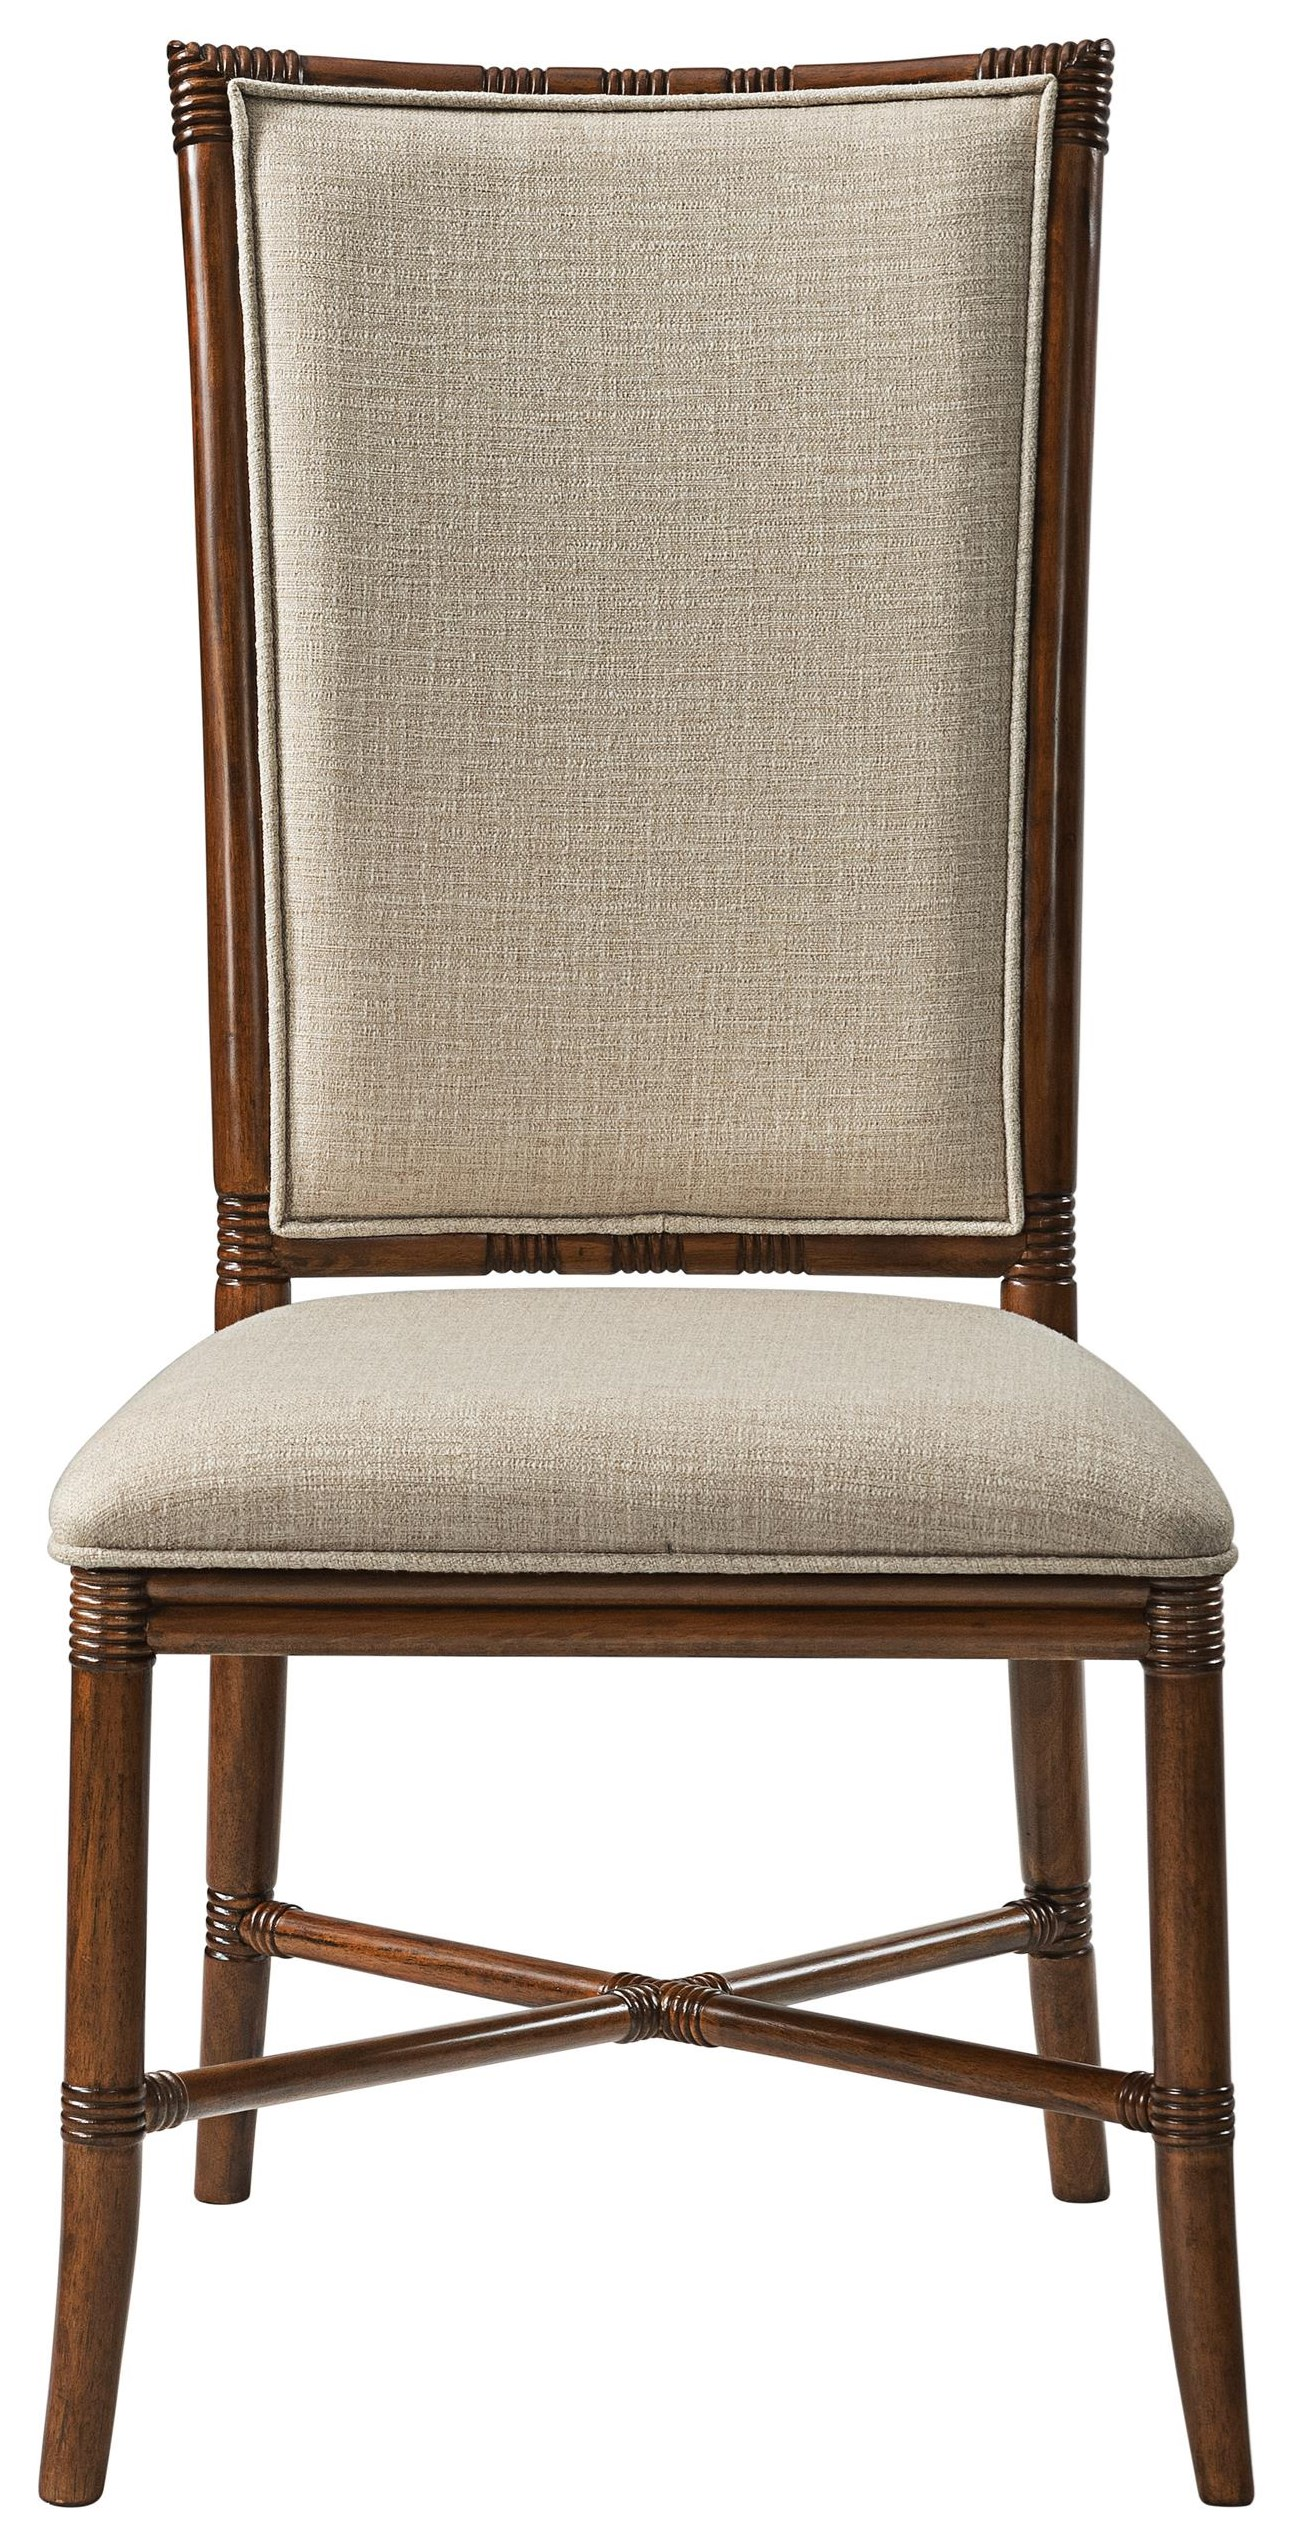 Tropical Breeze Upholstered Side Chair by Stillwater Furniture at Baer's Furniture